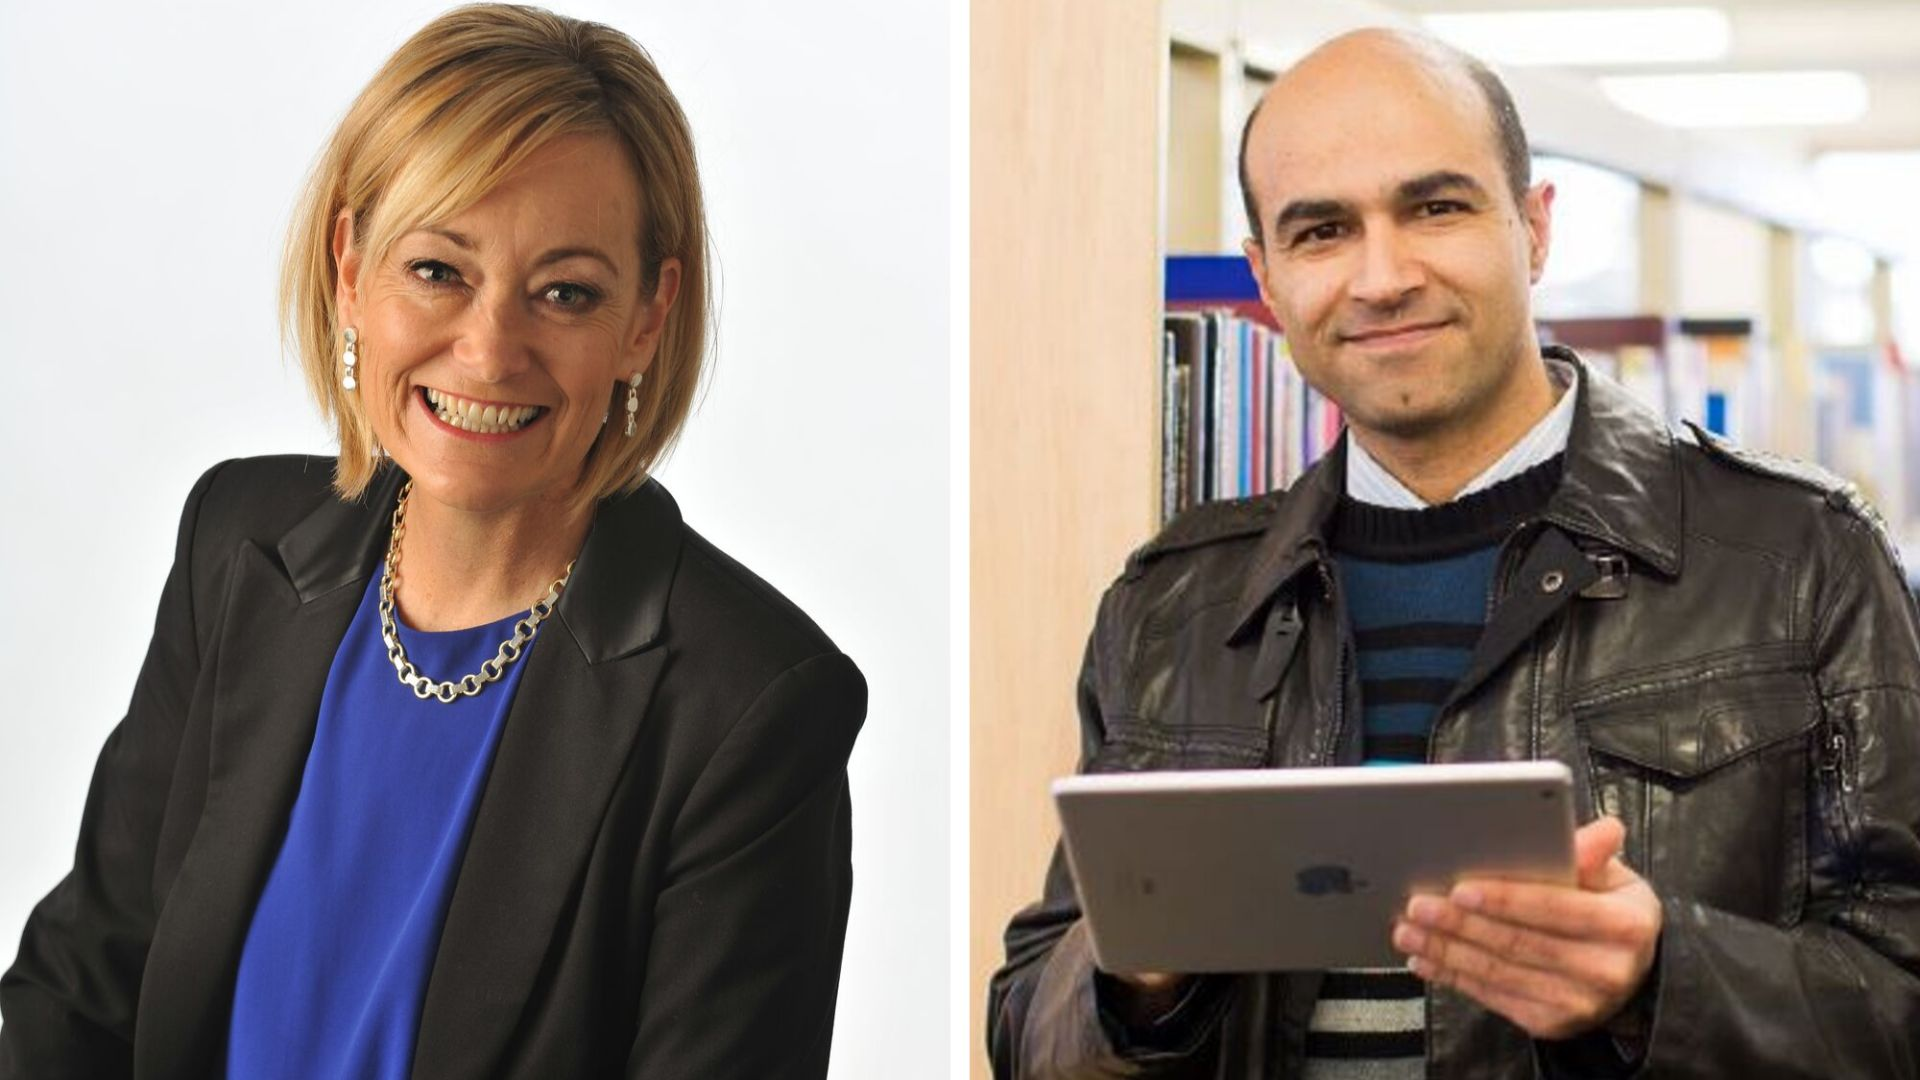 Two of the best: Charles Sturt researchers acknowledged as national leaders